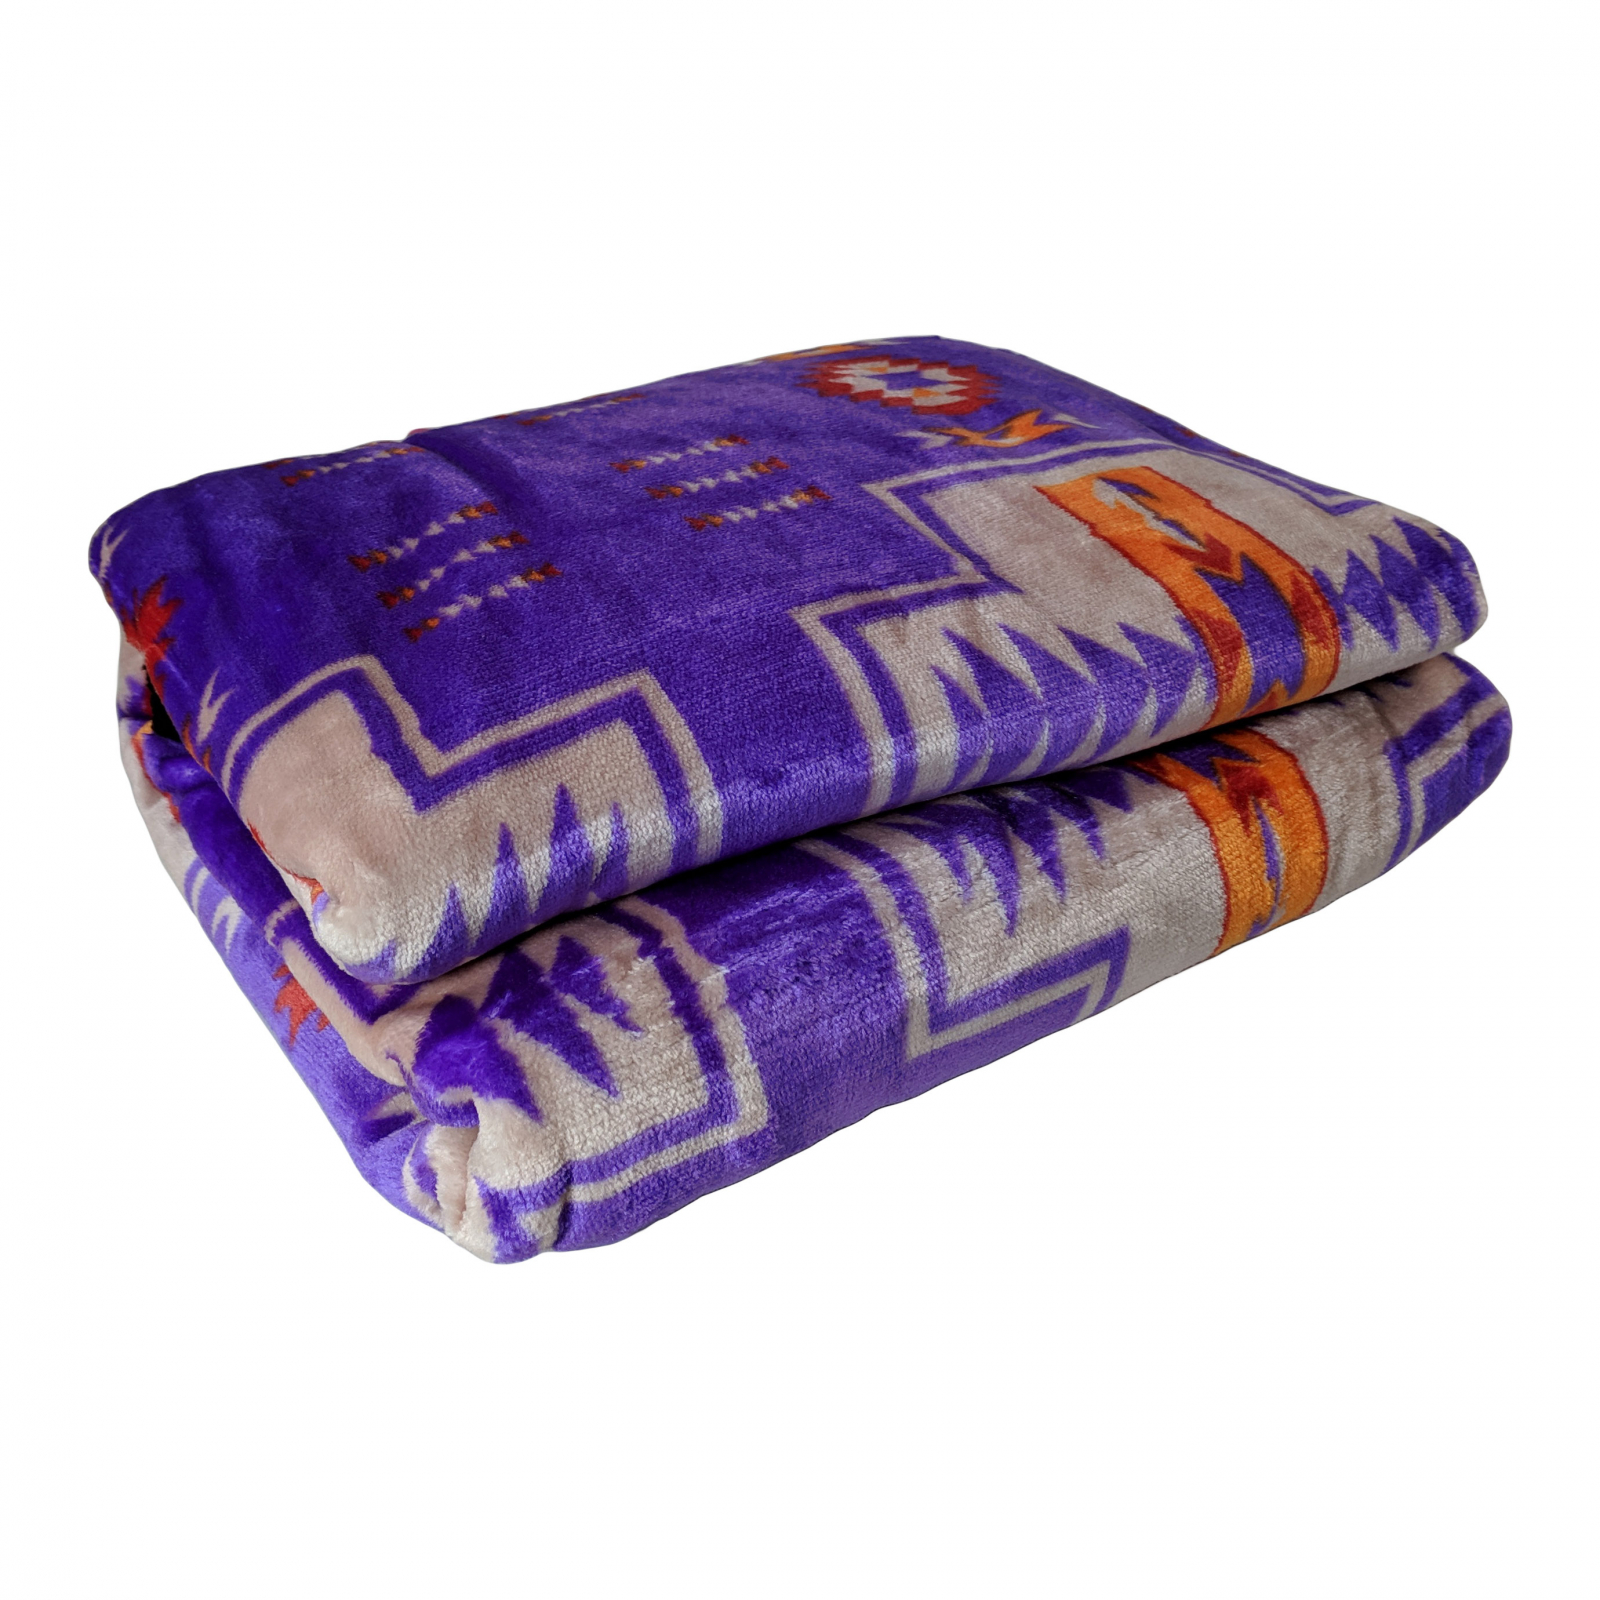 ASR Outdoor Adventure Wilderness Reversible Blanket Southwest Design - Purple